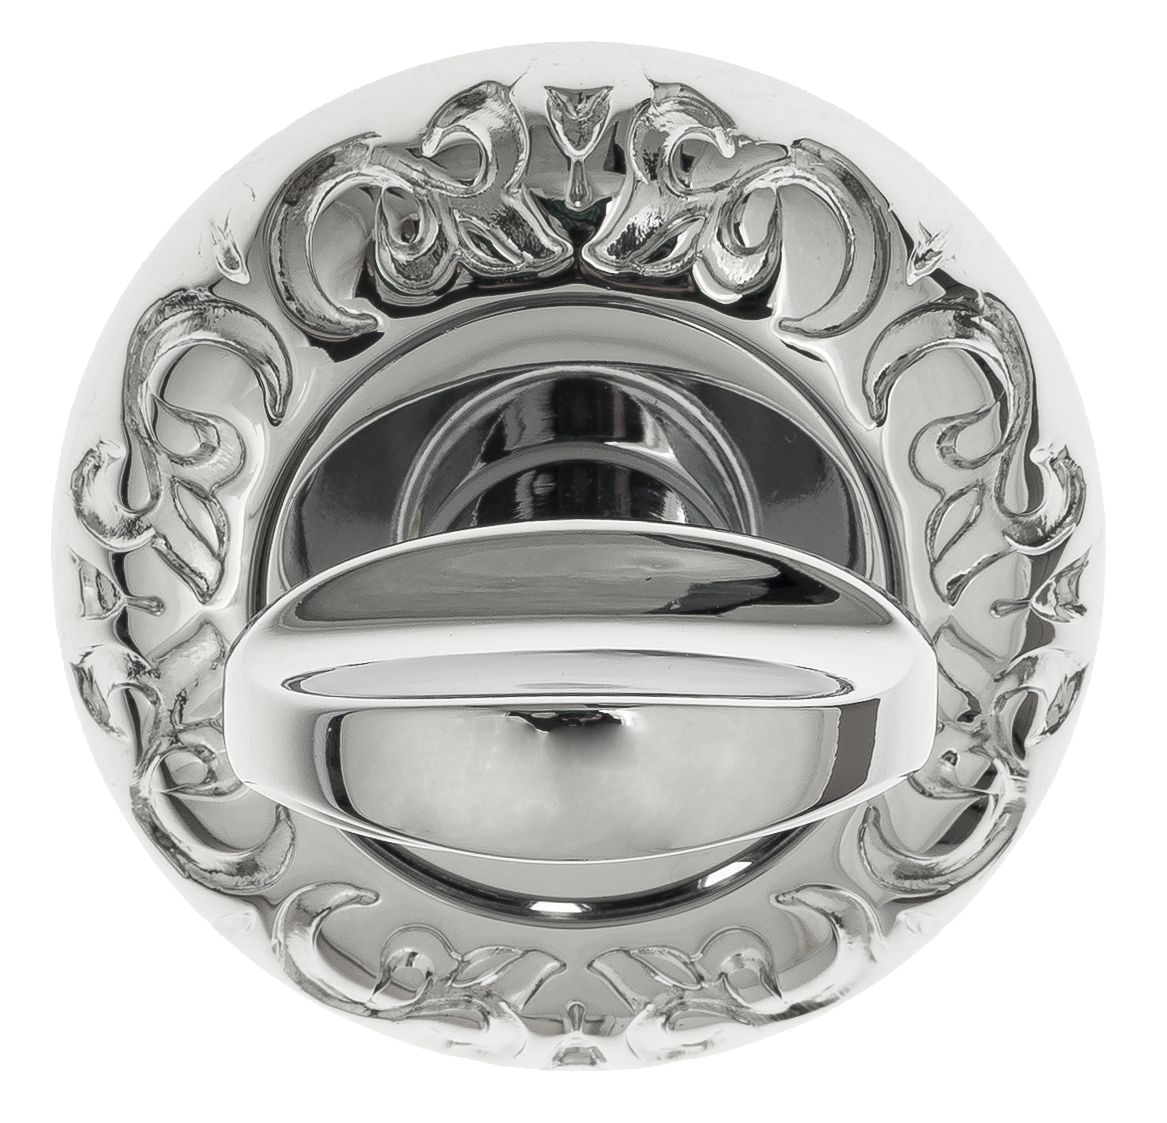 Bathroom Turn & Release Venezia WC-2 D4 Polished Chrome